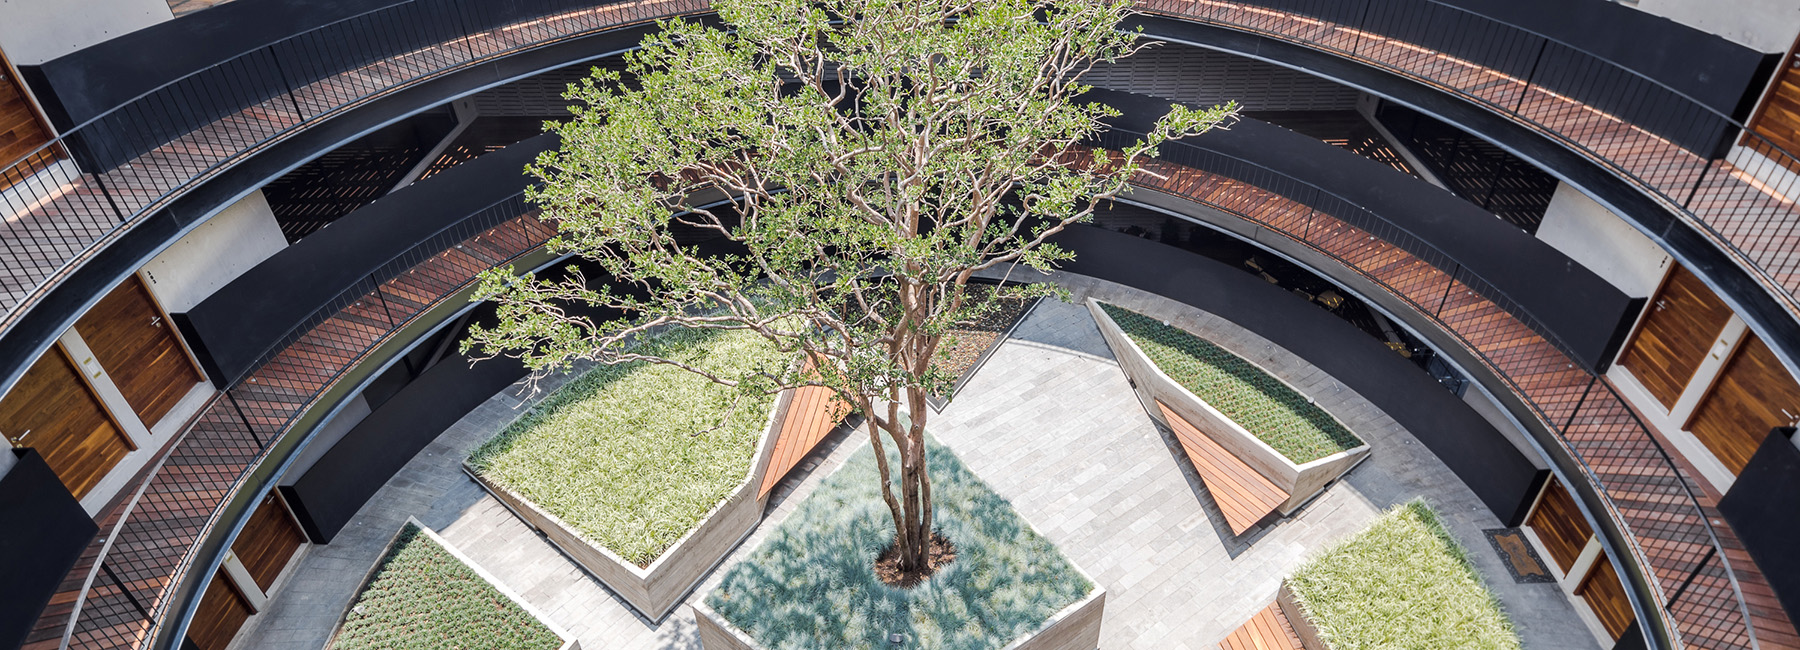 Courtyard Designs Hgr Arquitectos Designs Building With Circular Courtyard As New